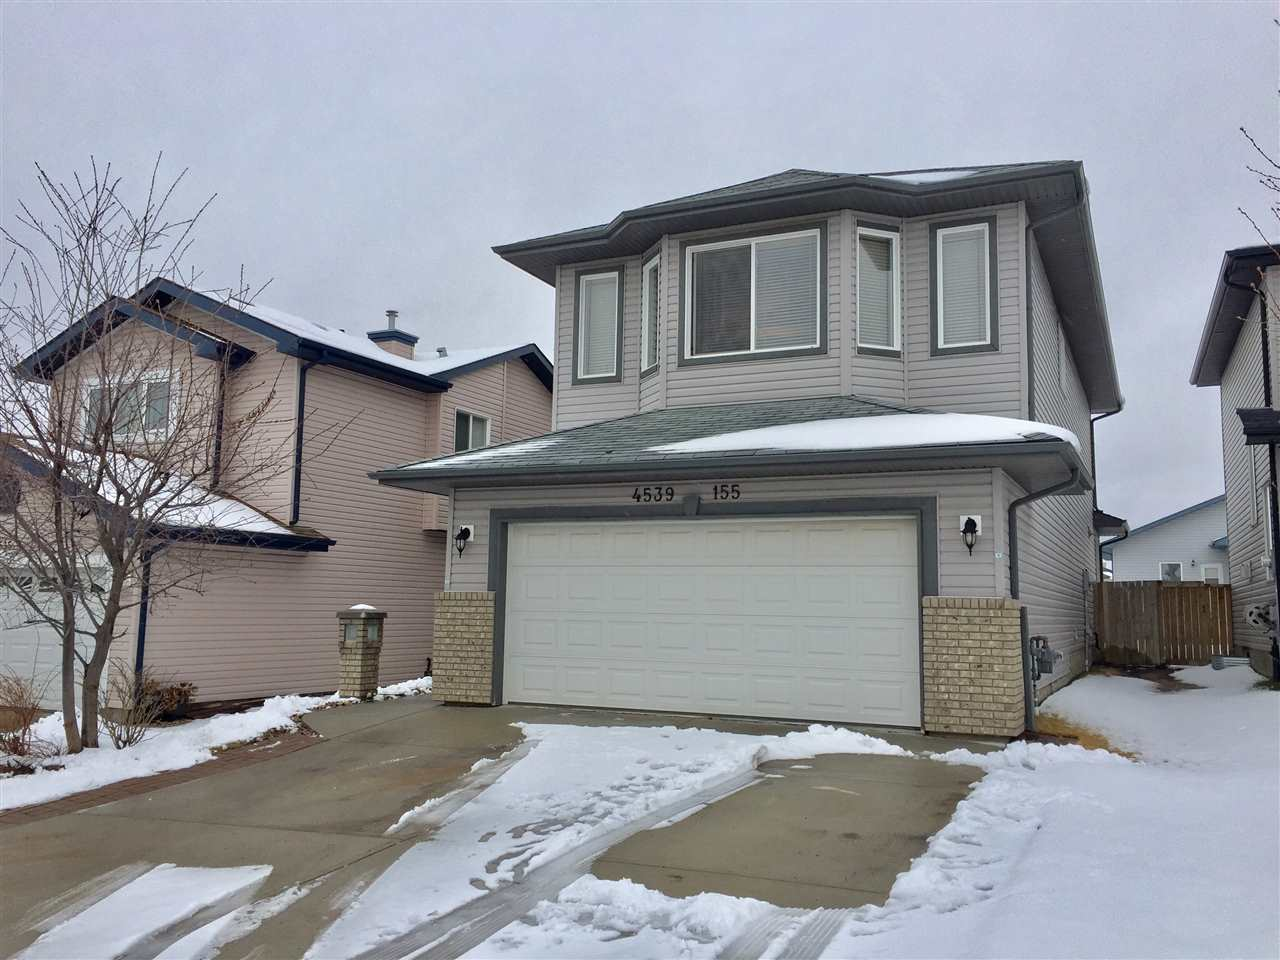 Main Photo: 4539 155 Avenue in Edmonton: Zone 03 House for sale : MLS(r) # E4060518